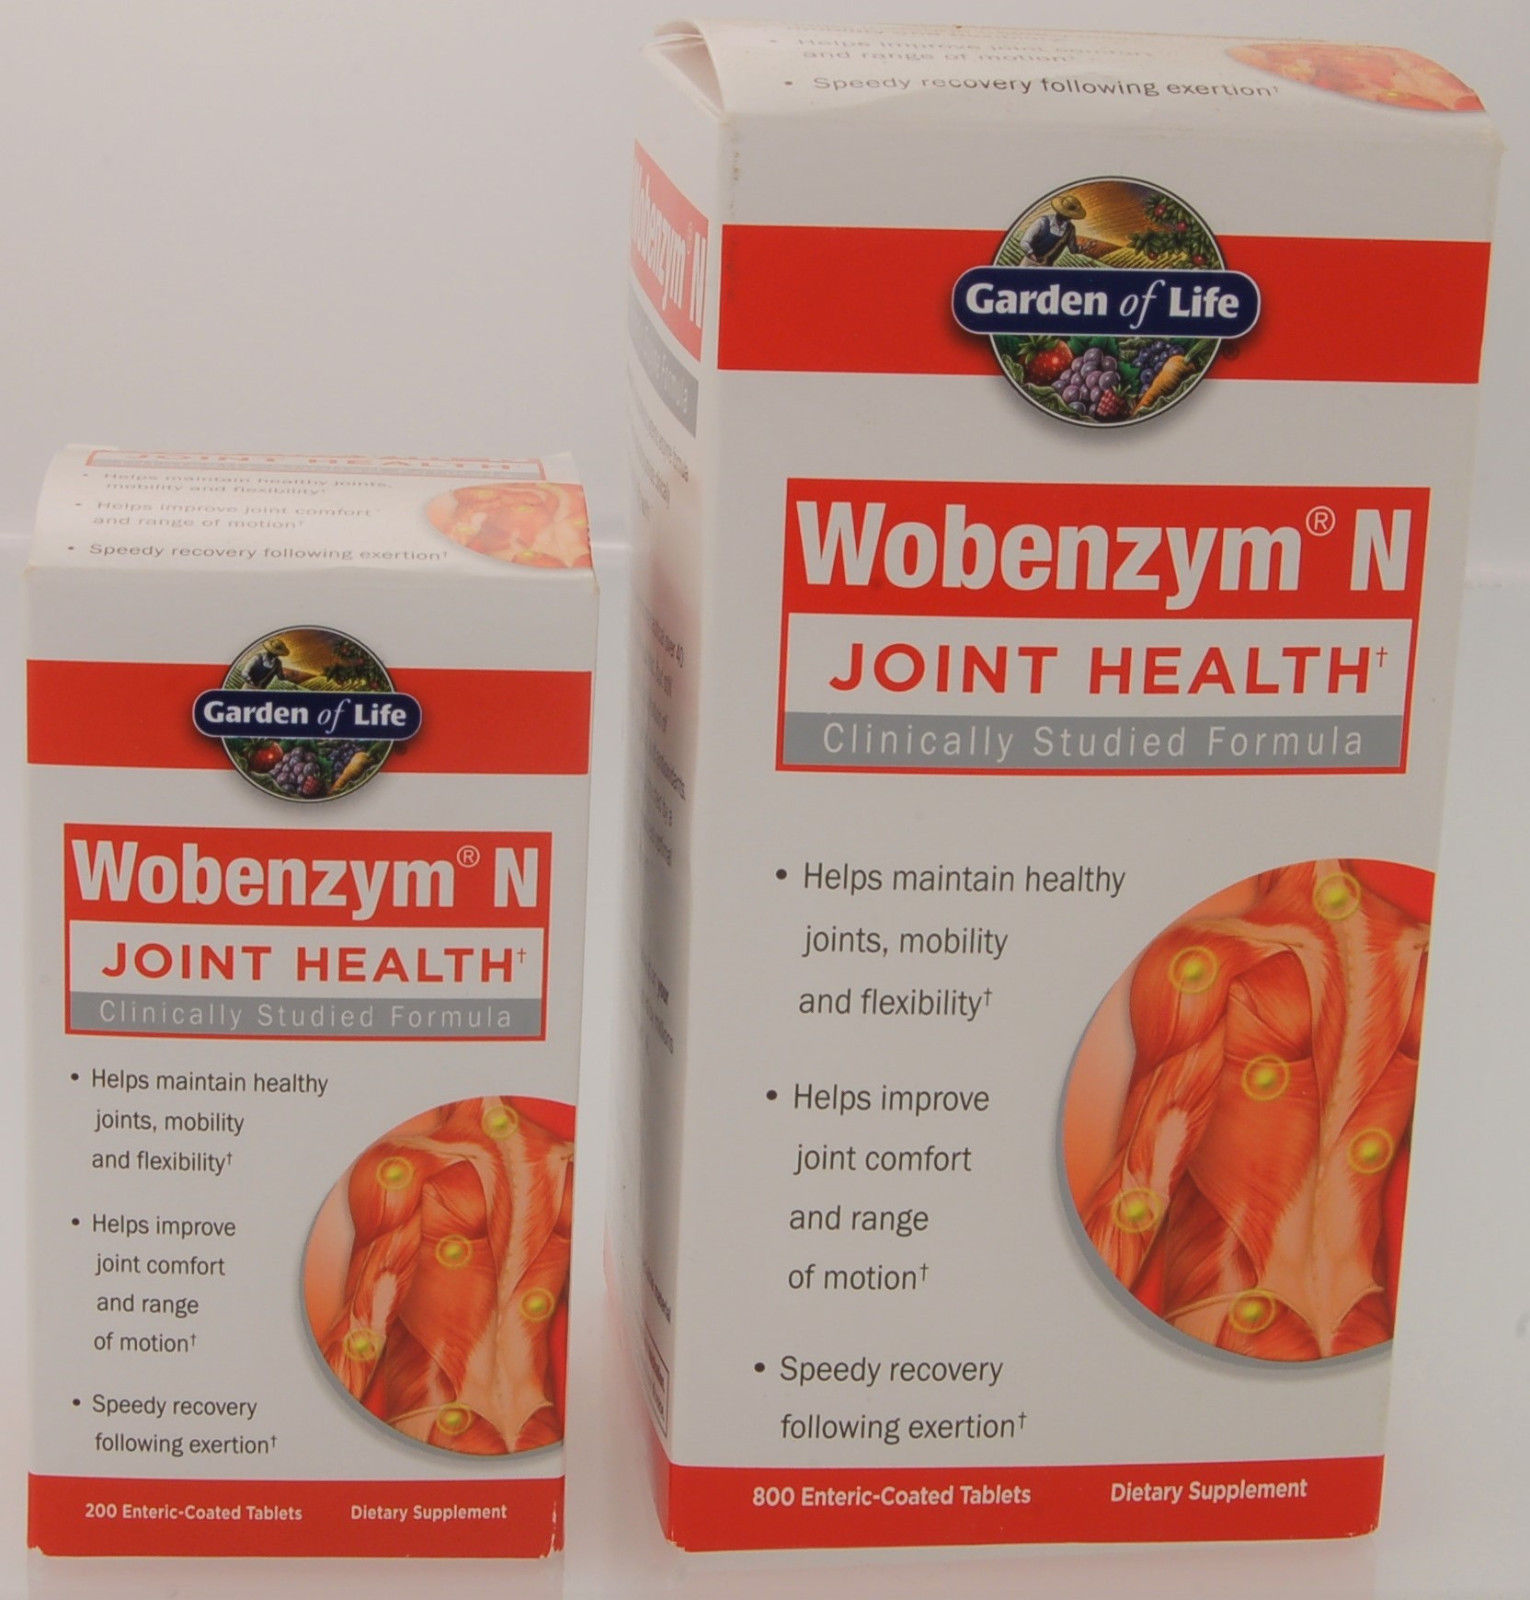 Wobenzym N Joint Health Dietary Supplement 800 or 200 Tablets – Your Choice